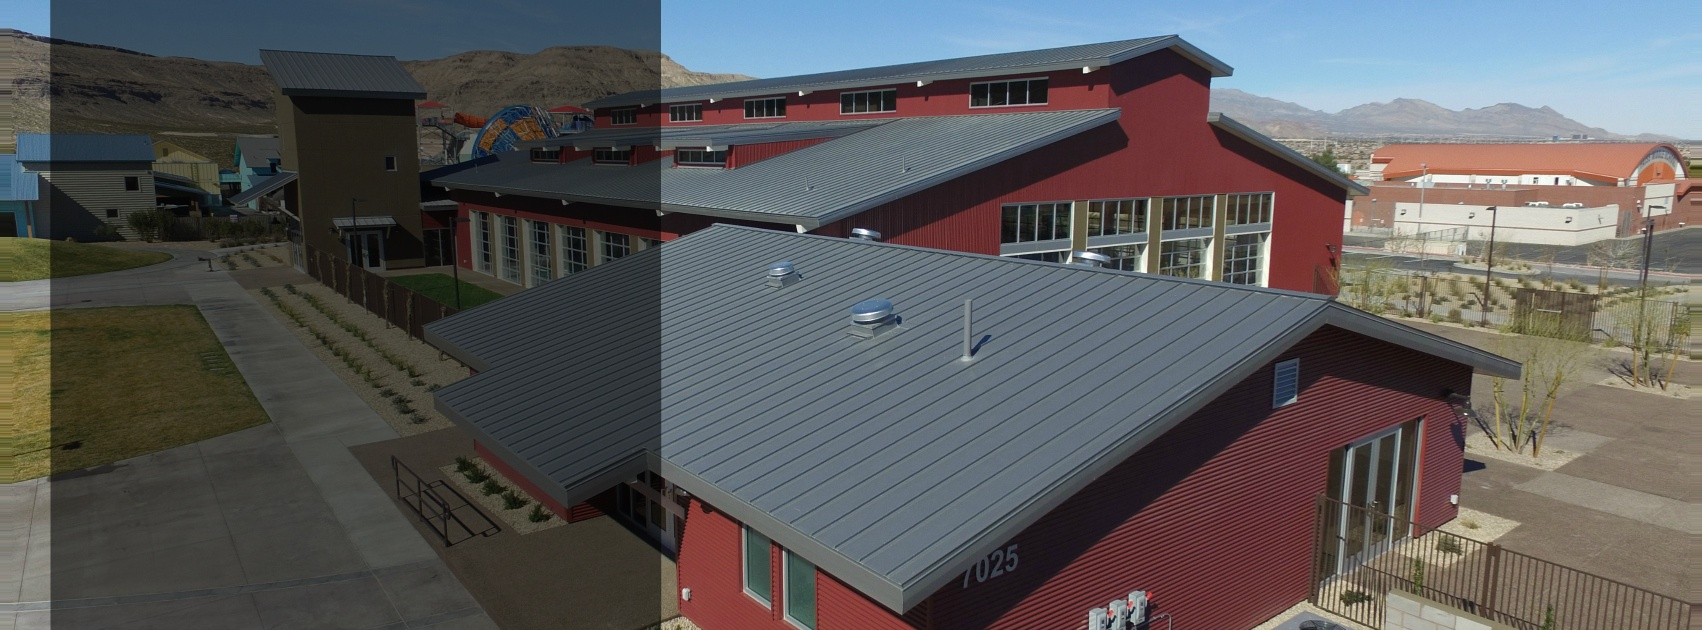 Commercial Roofing - Metal